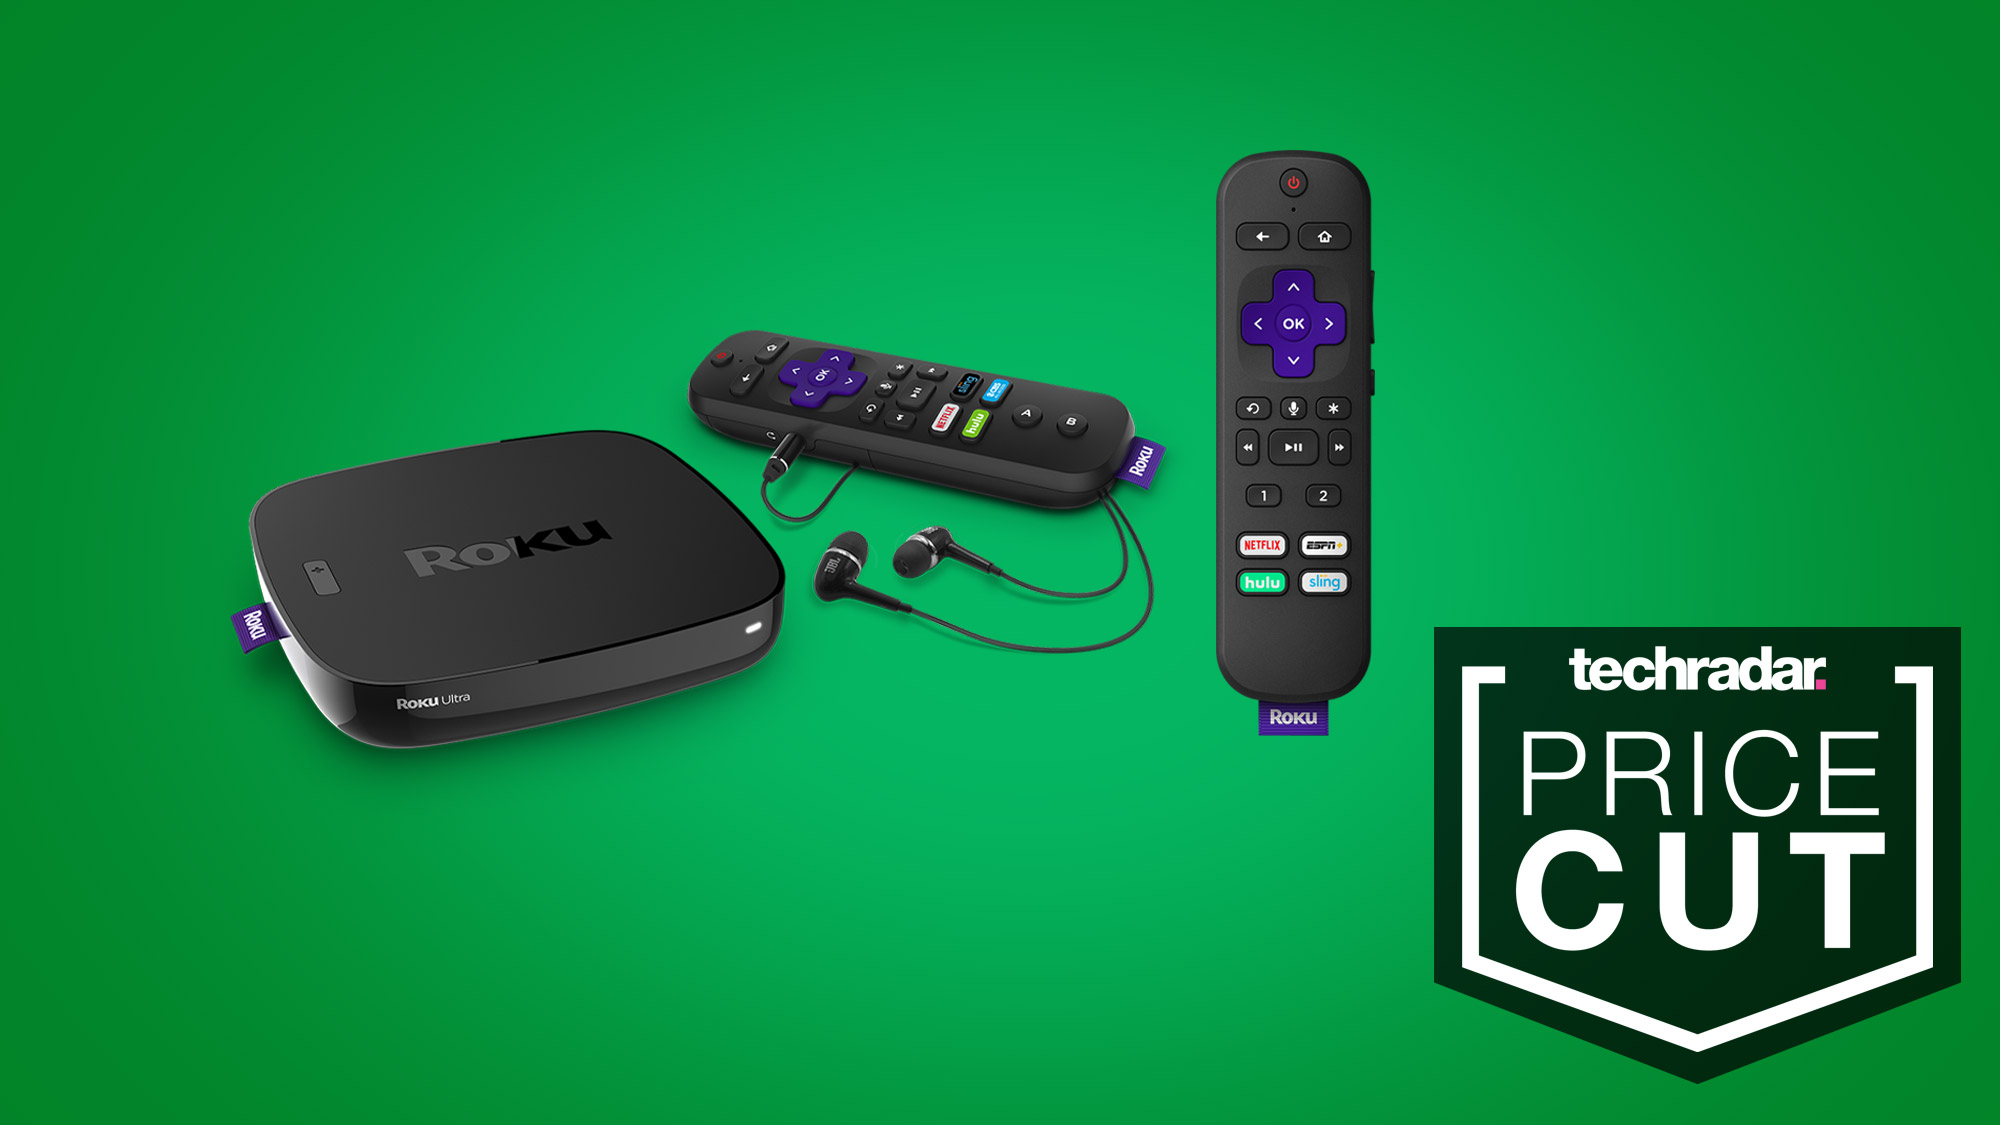 This Roku is now on sale for cheapest-ever price of $18